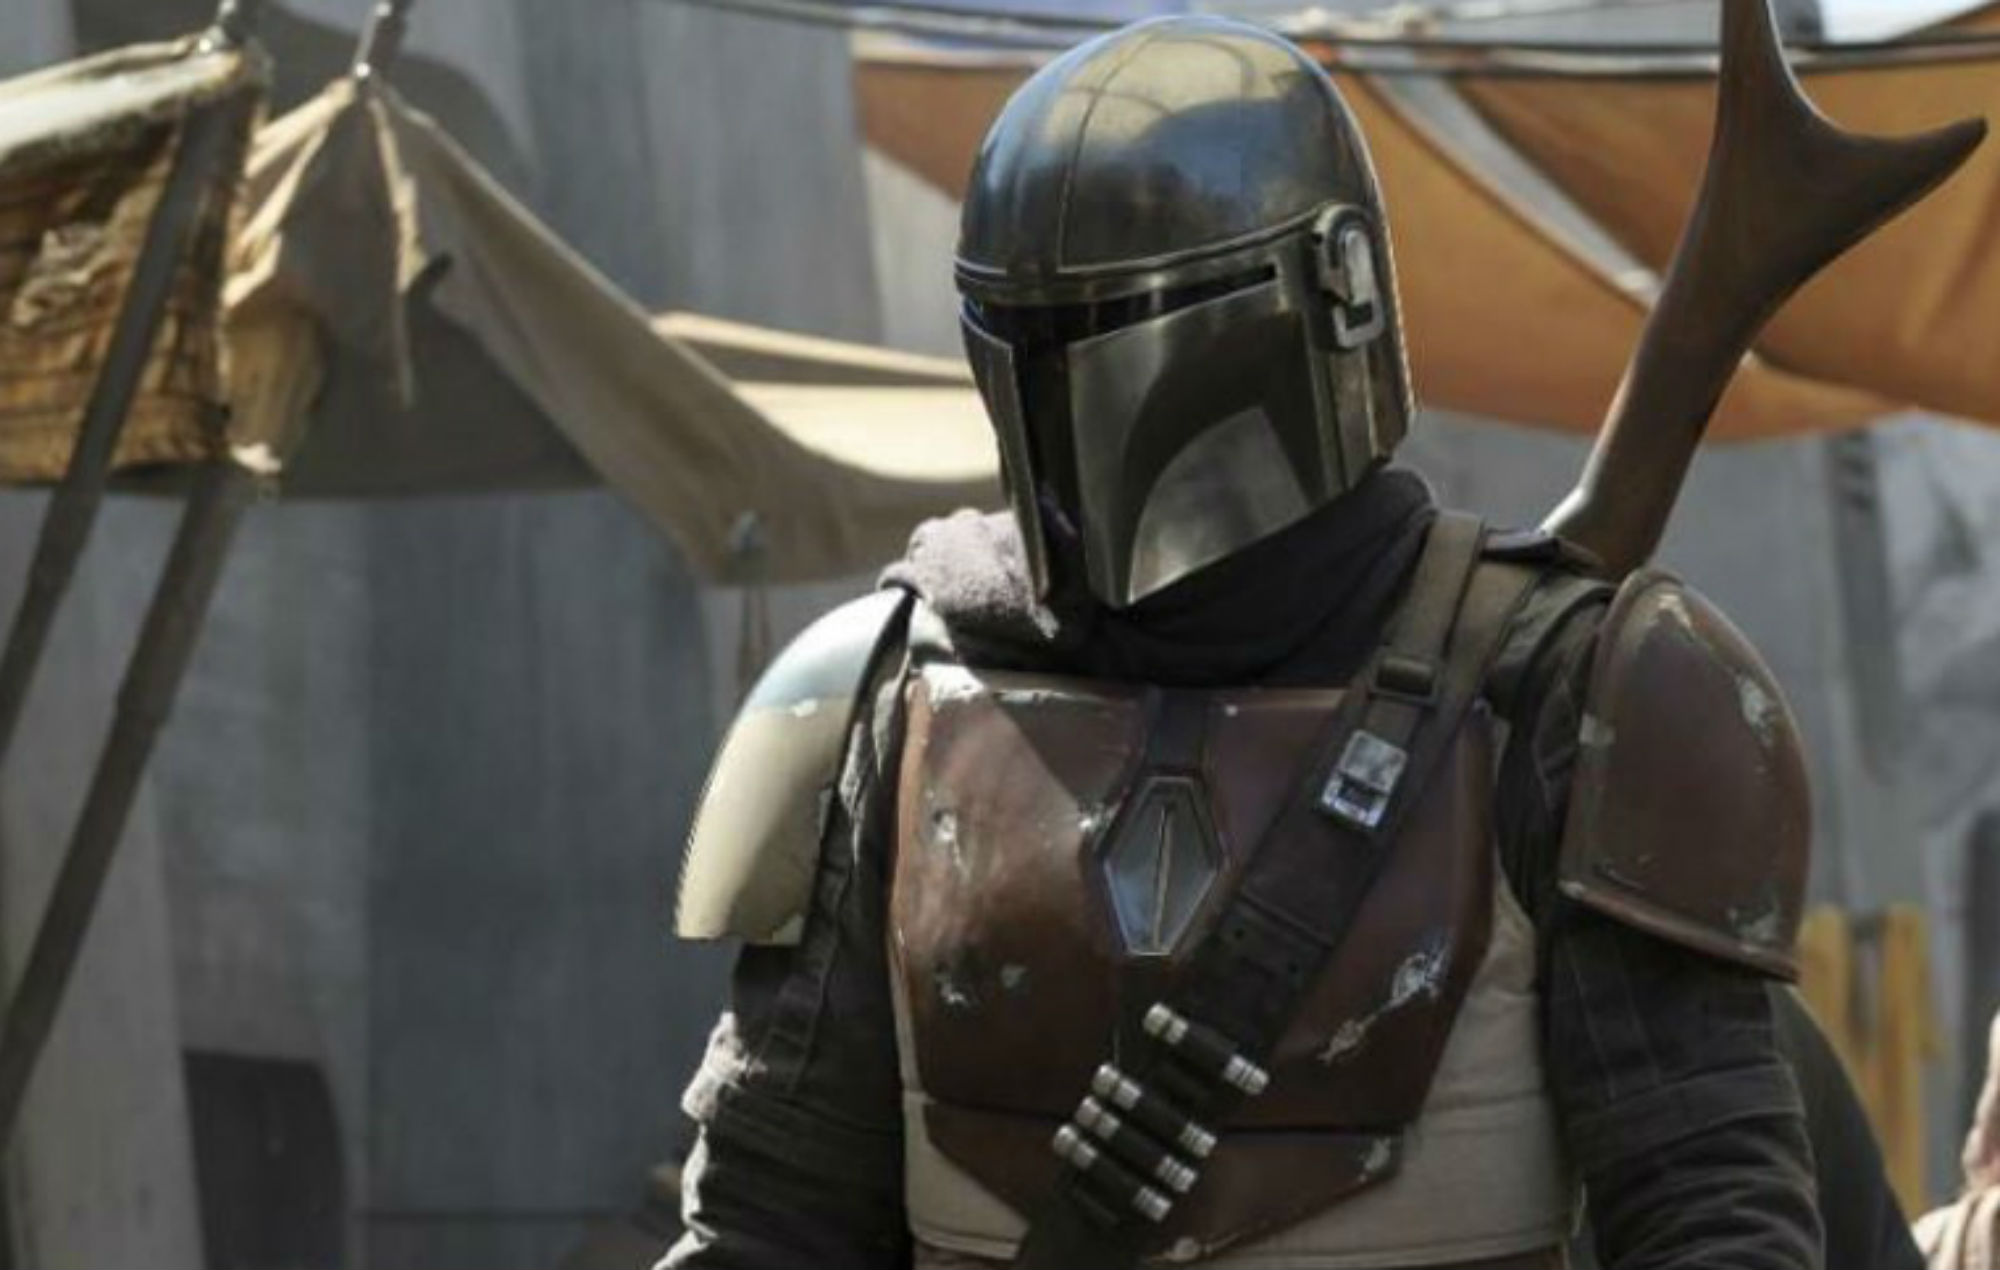 'The Mandalorian' Star Wars TV series: release date, plot, trailer and everything we know so far